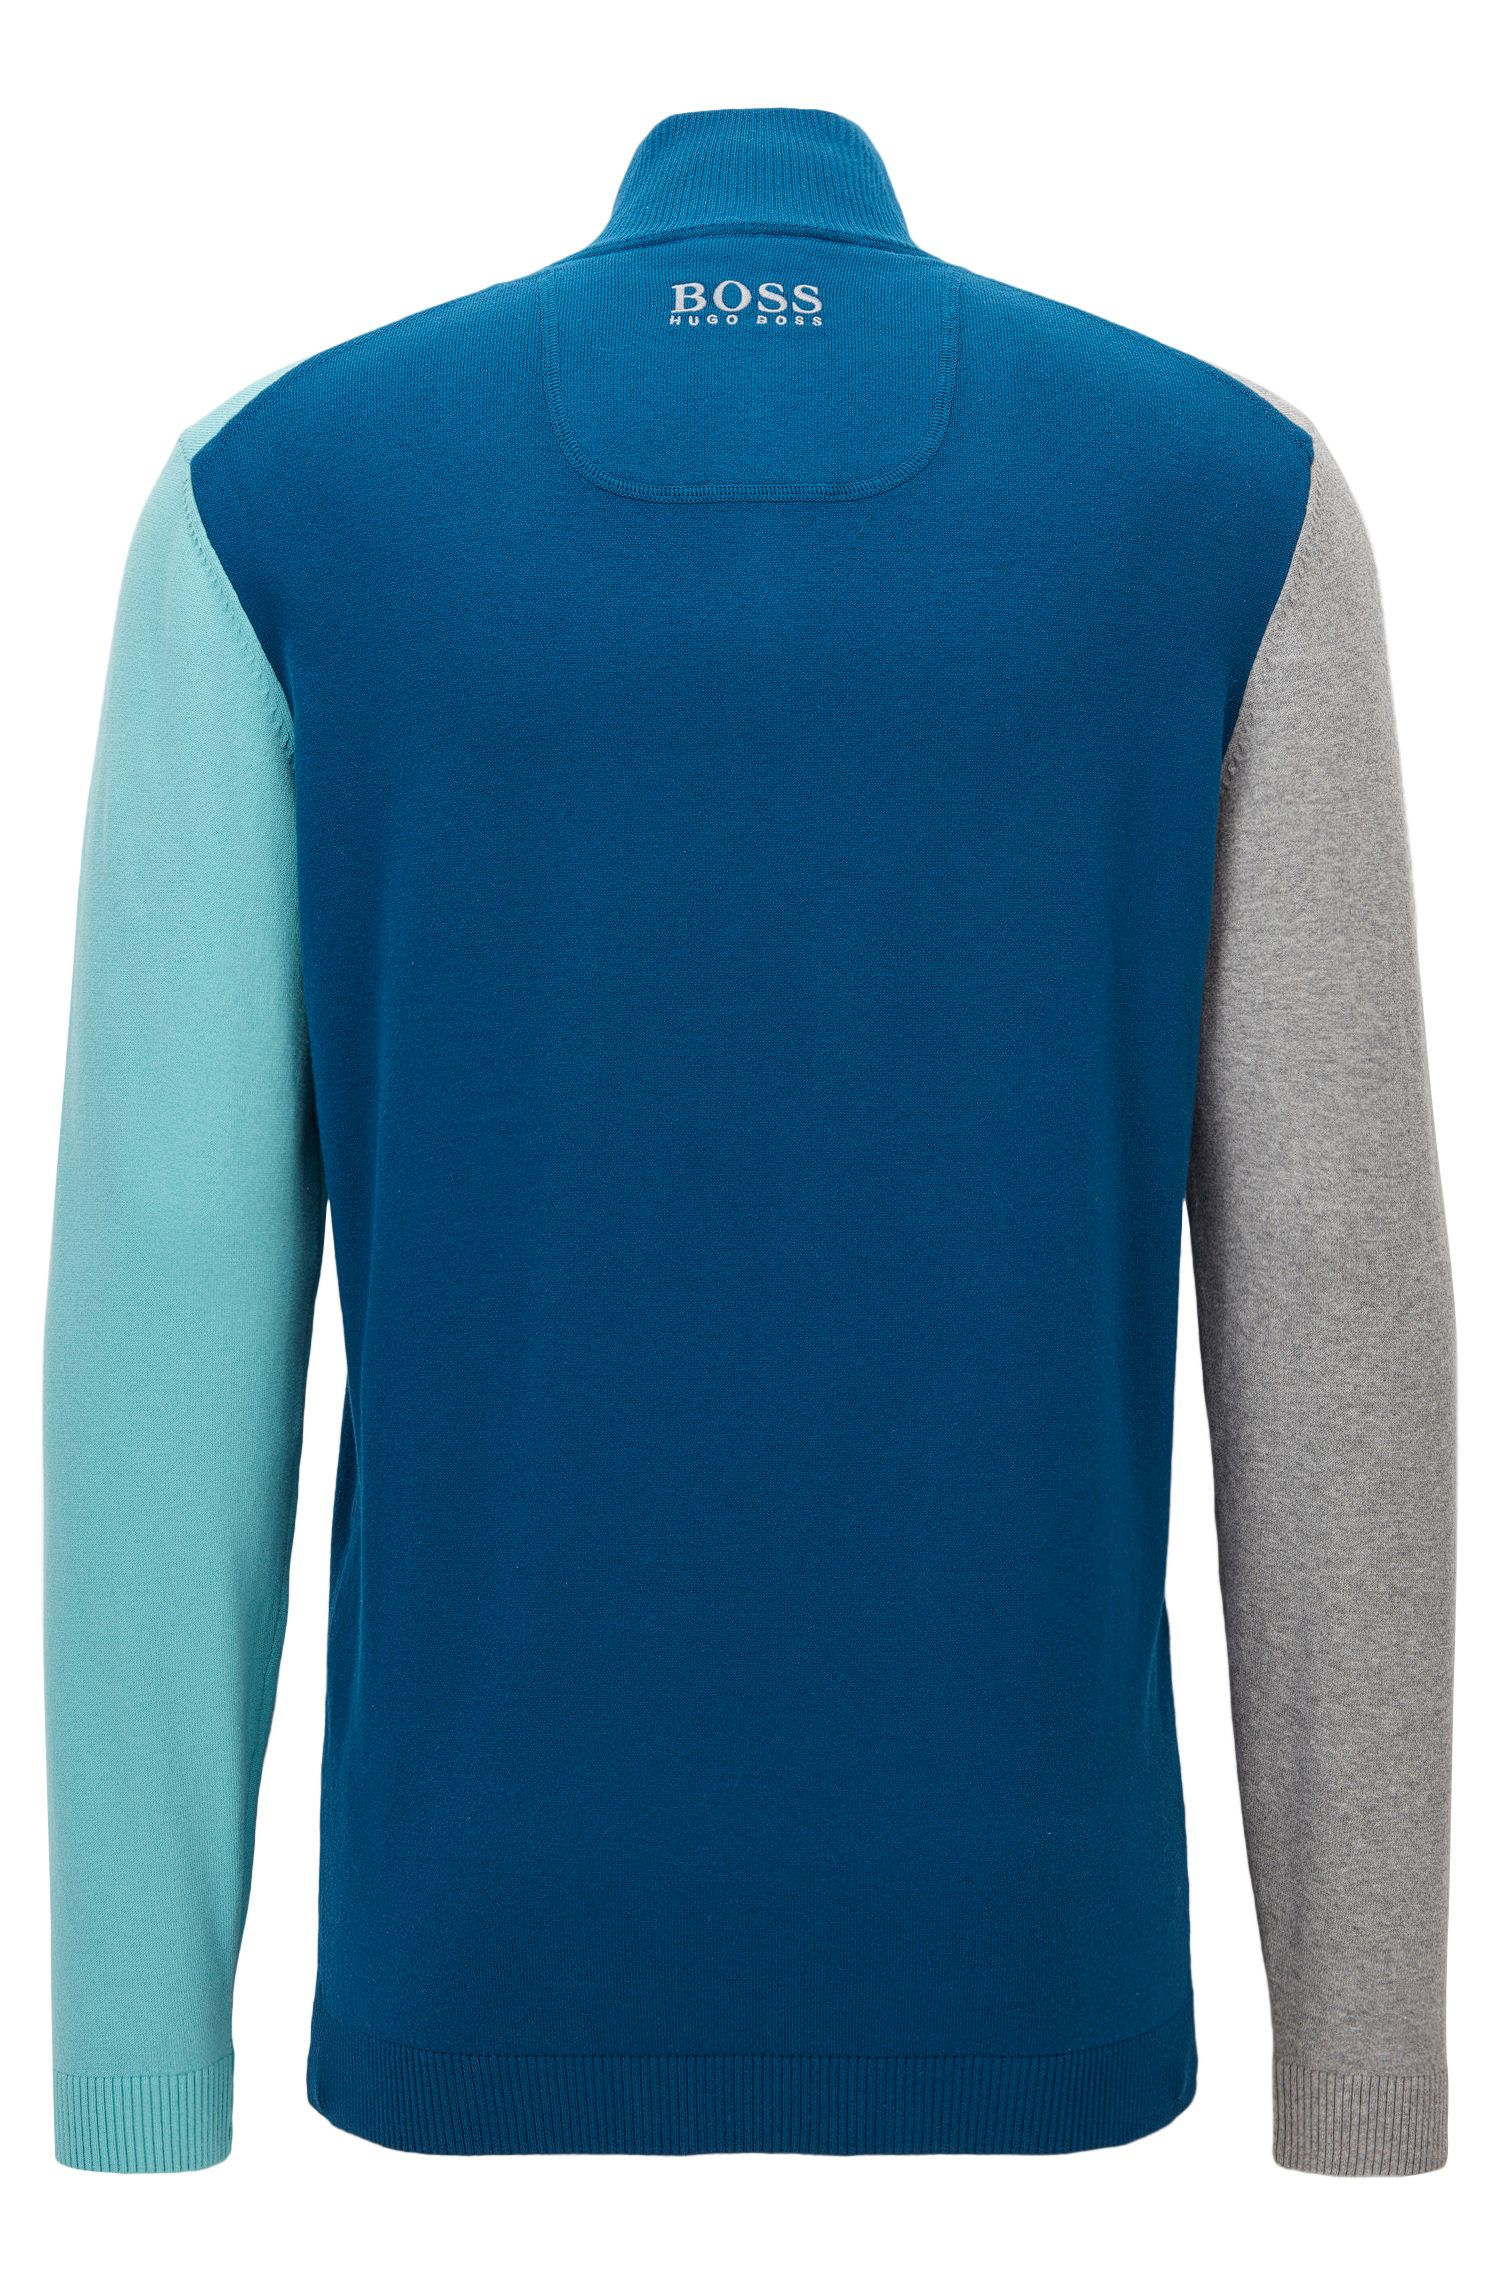 Colorblock Stretch Cotton Sweater | Zelchior Pro W17, Open Blue